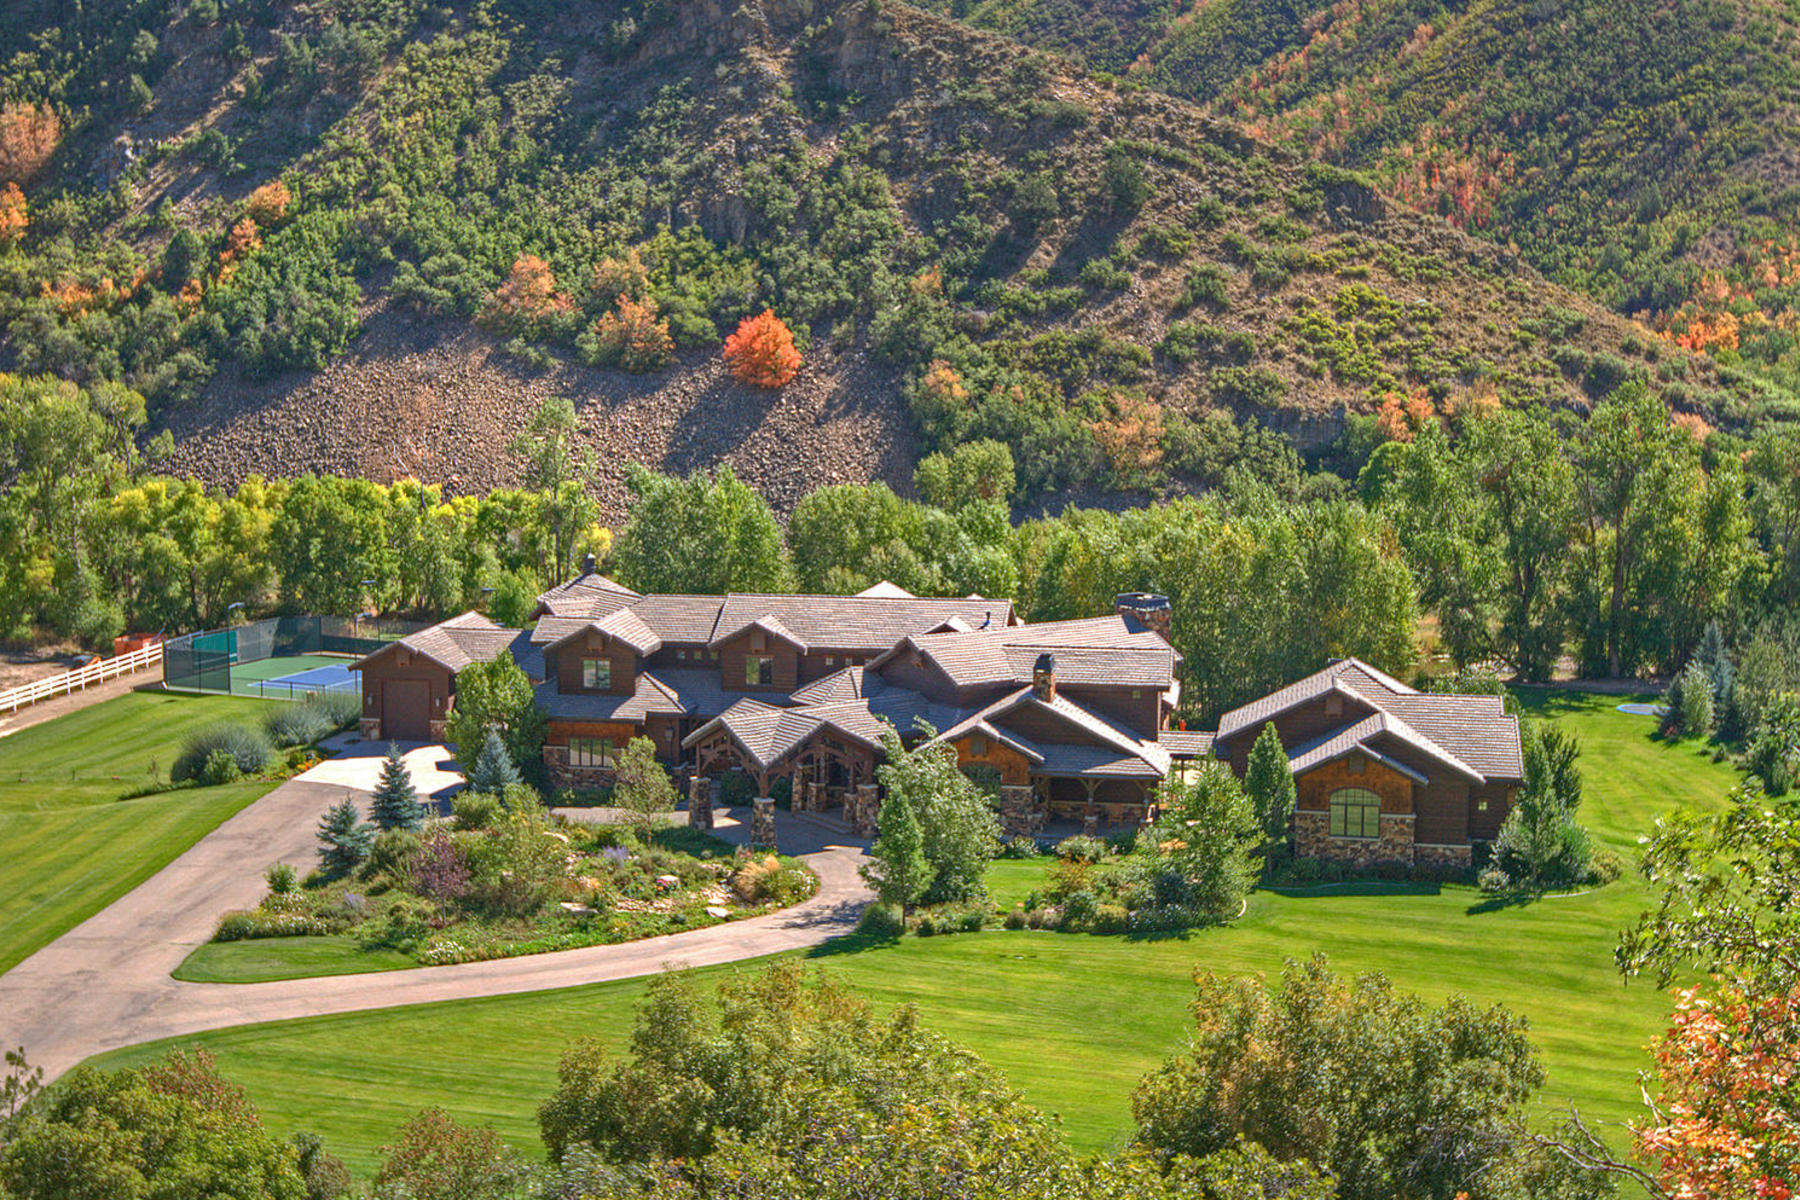 단독 가정 주택 용 매매 에 Incredible Estate in Hobble Creek Canyon 887 Hobble Creek Canyon Rd Springville, 유타, 84663 미국